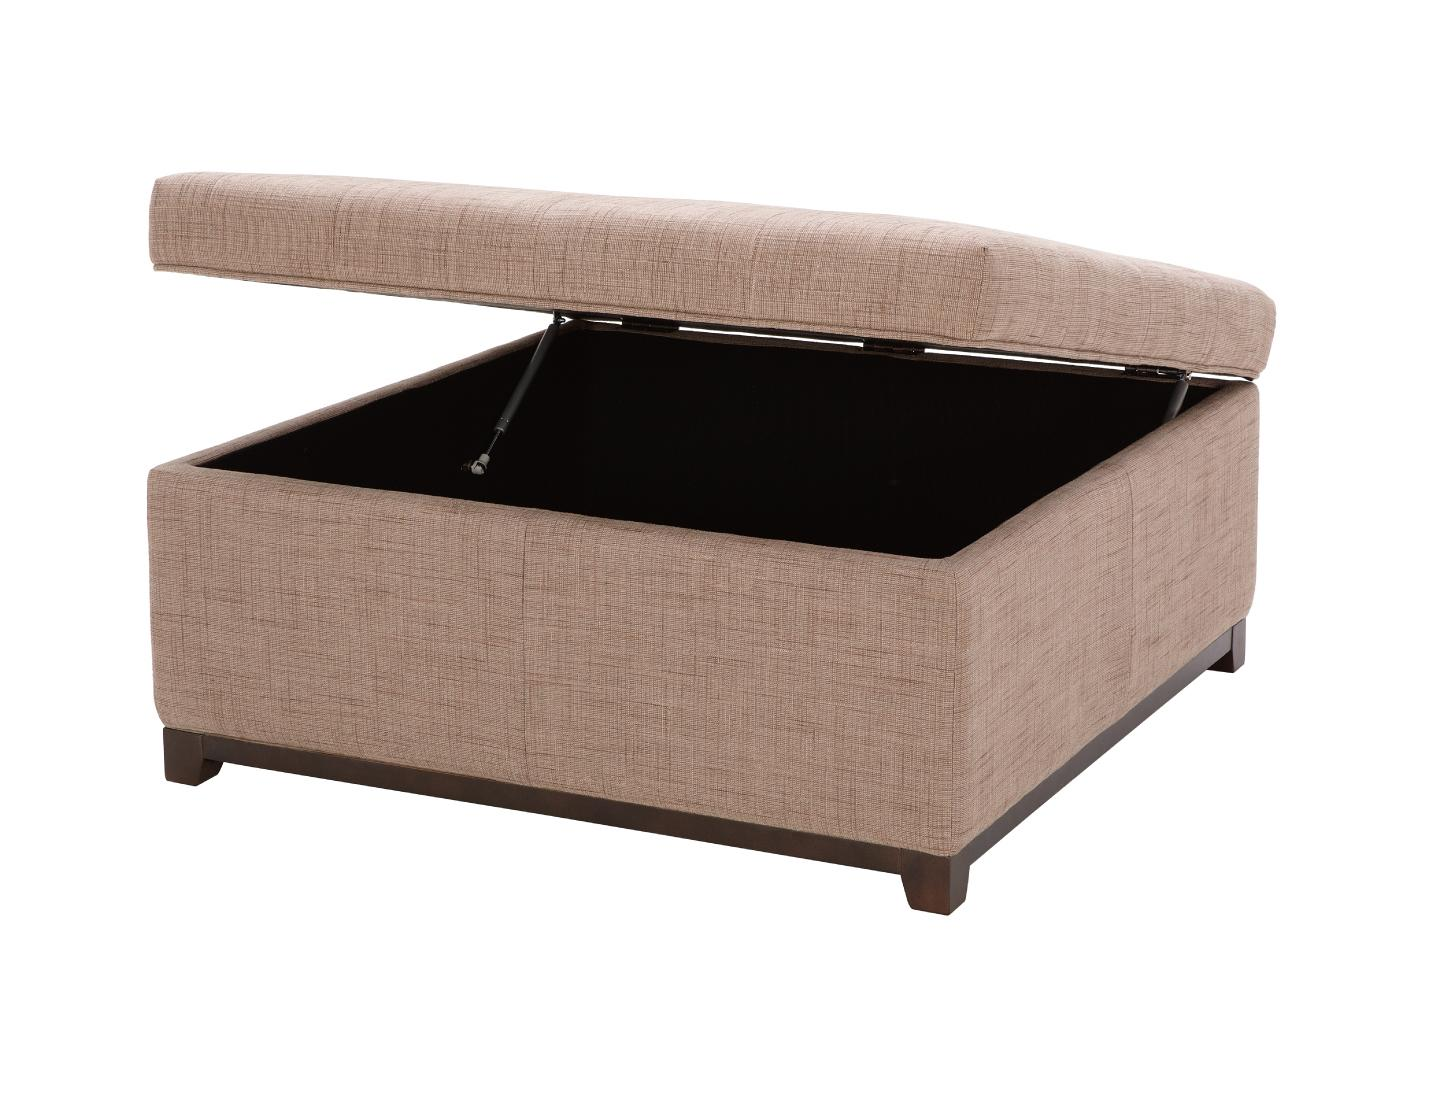 Accent Ottomans Storage Ottoman With Tufting